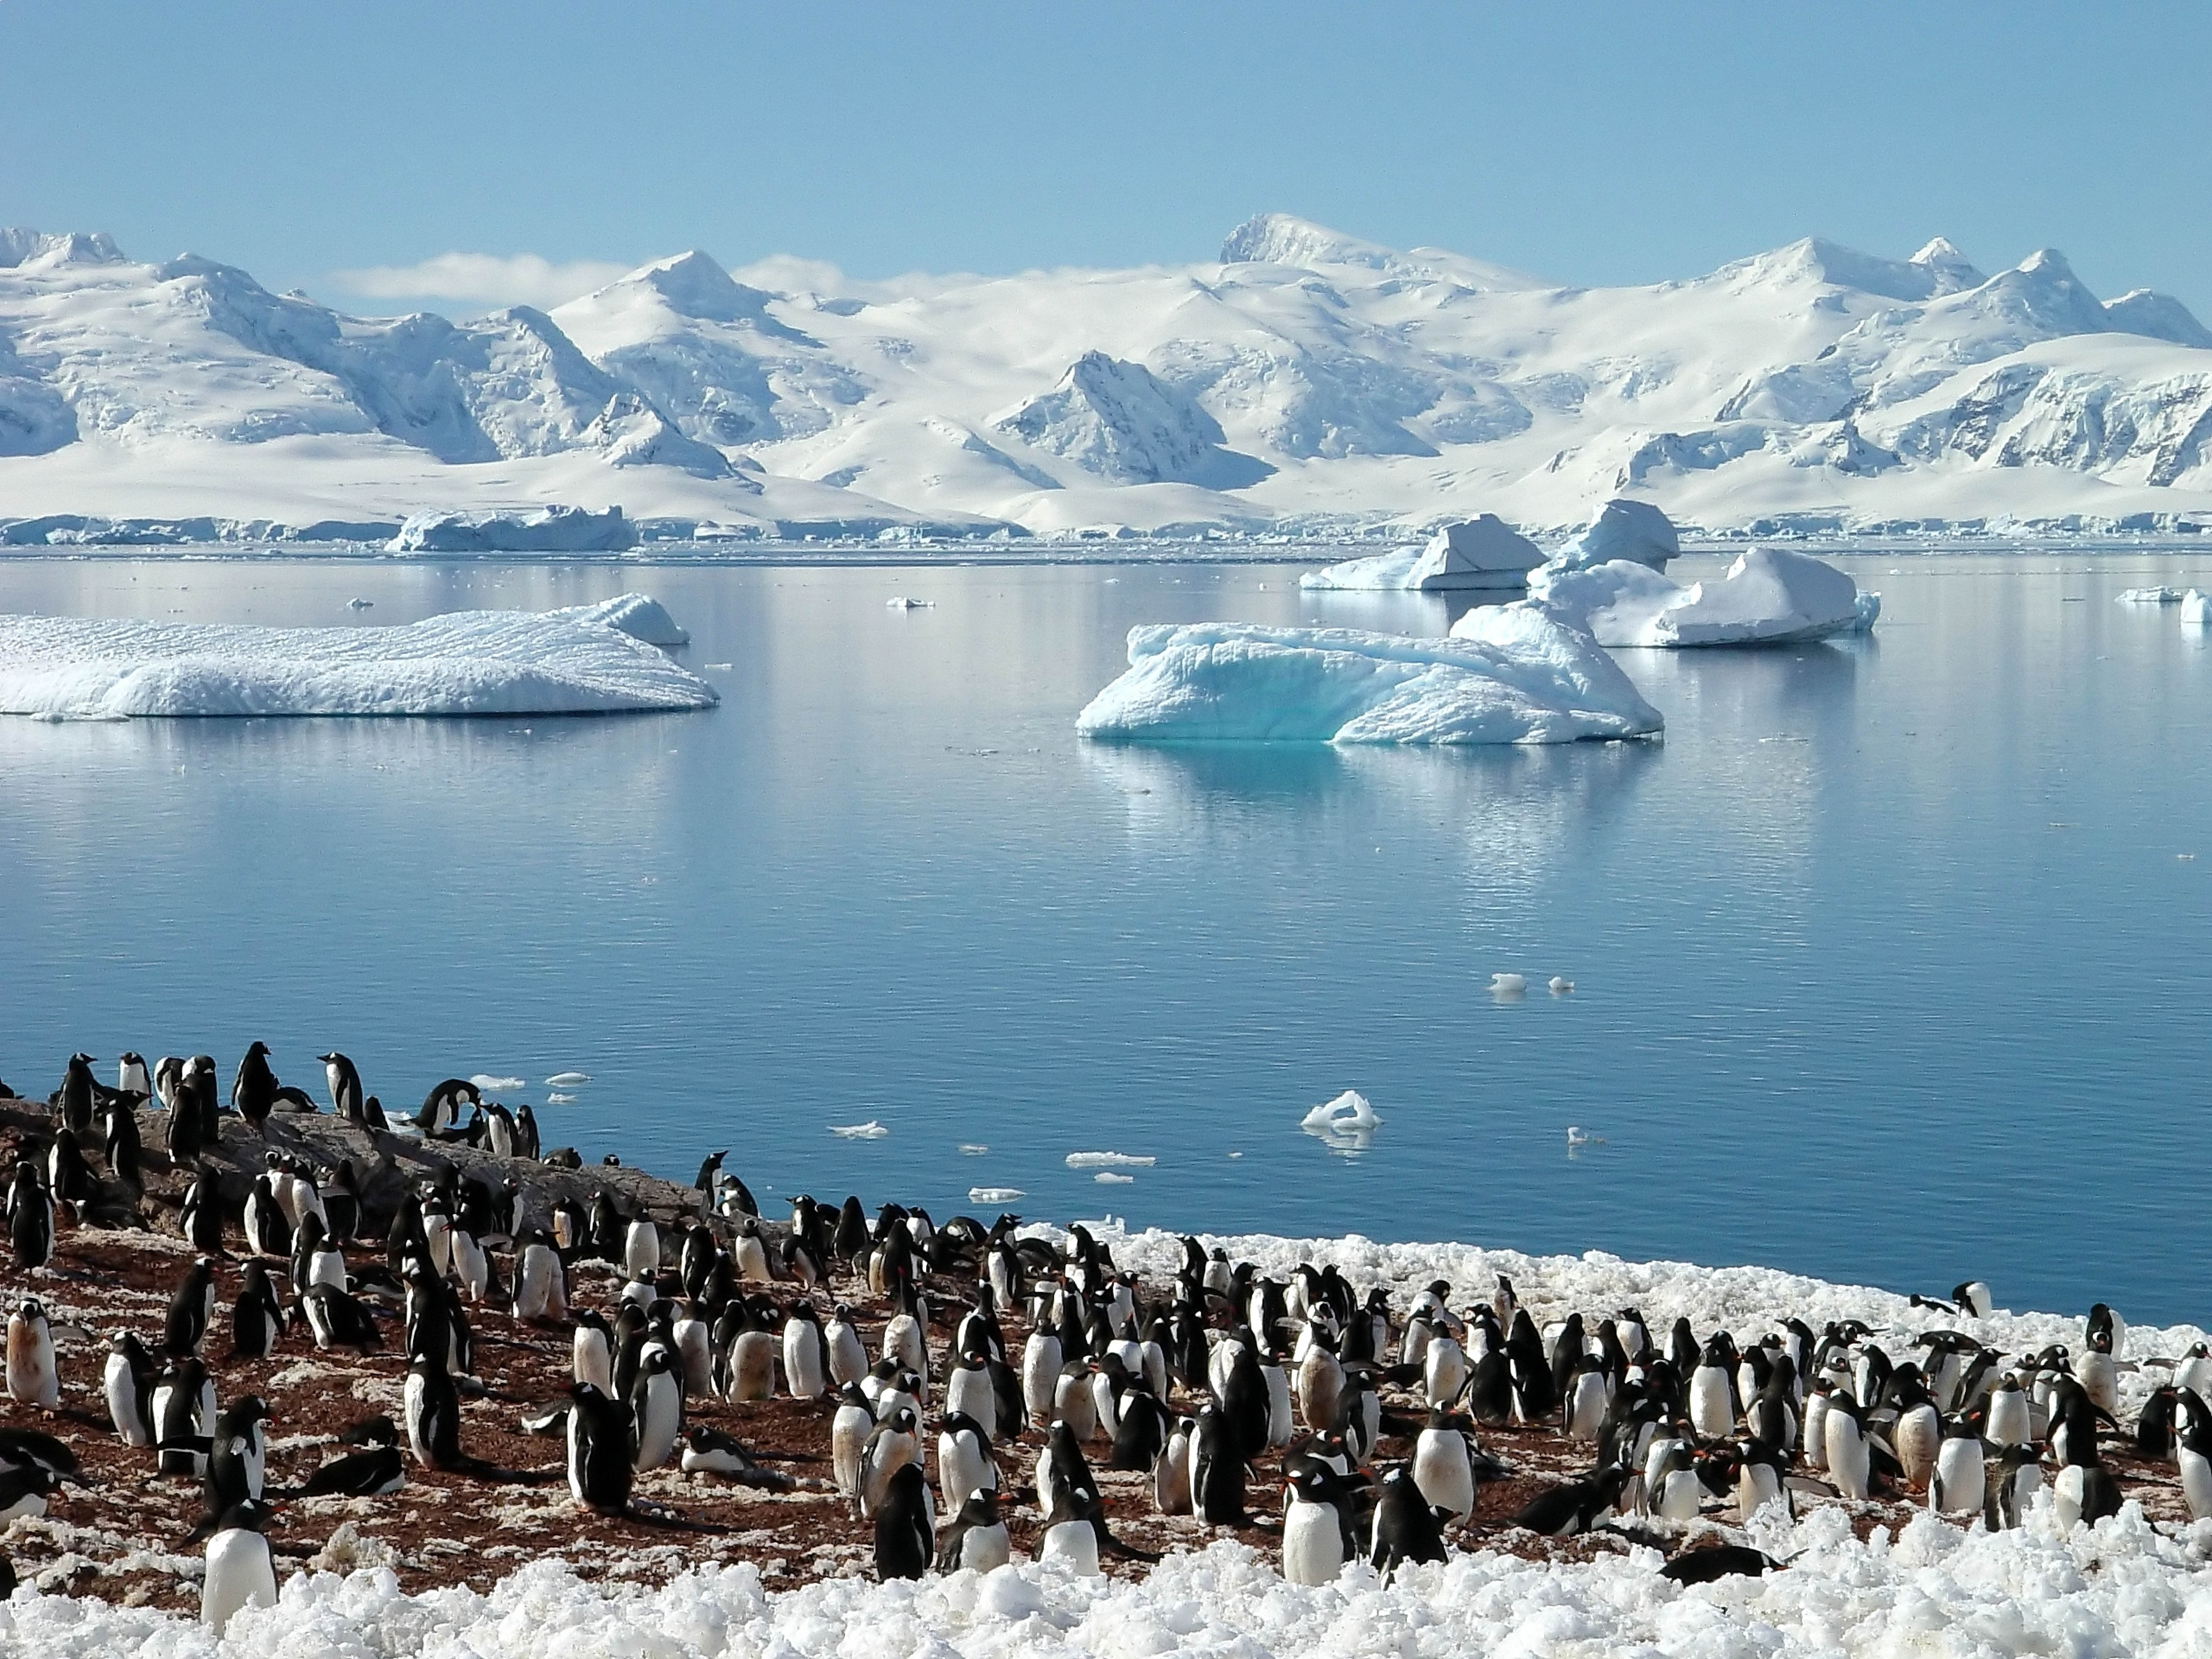 114563 download wallpaper Animals, Pinguins, Sea, Flock, Spring, Glaciers, North screensavers and pictures for free